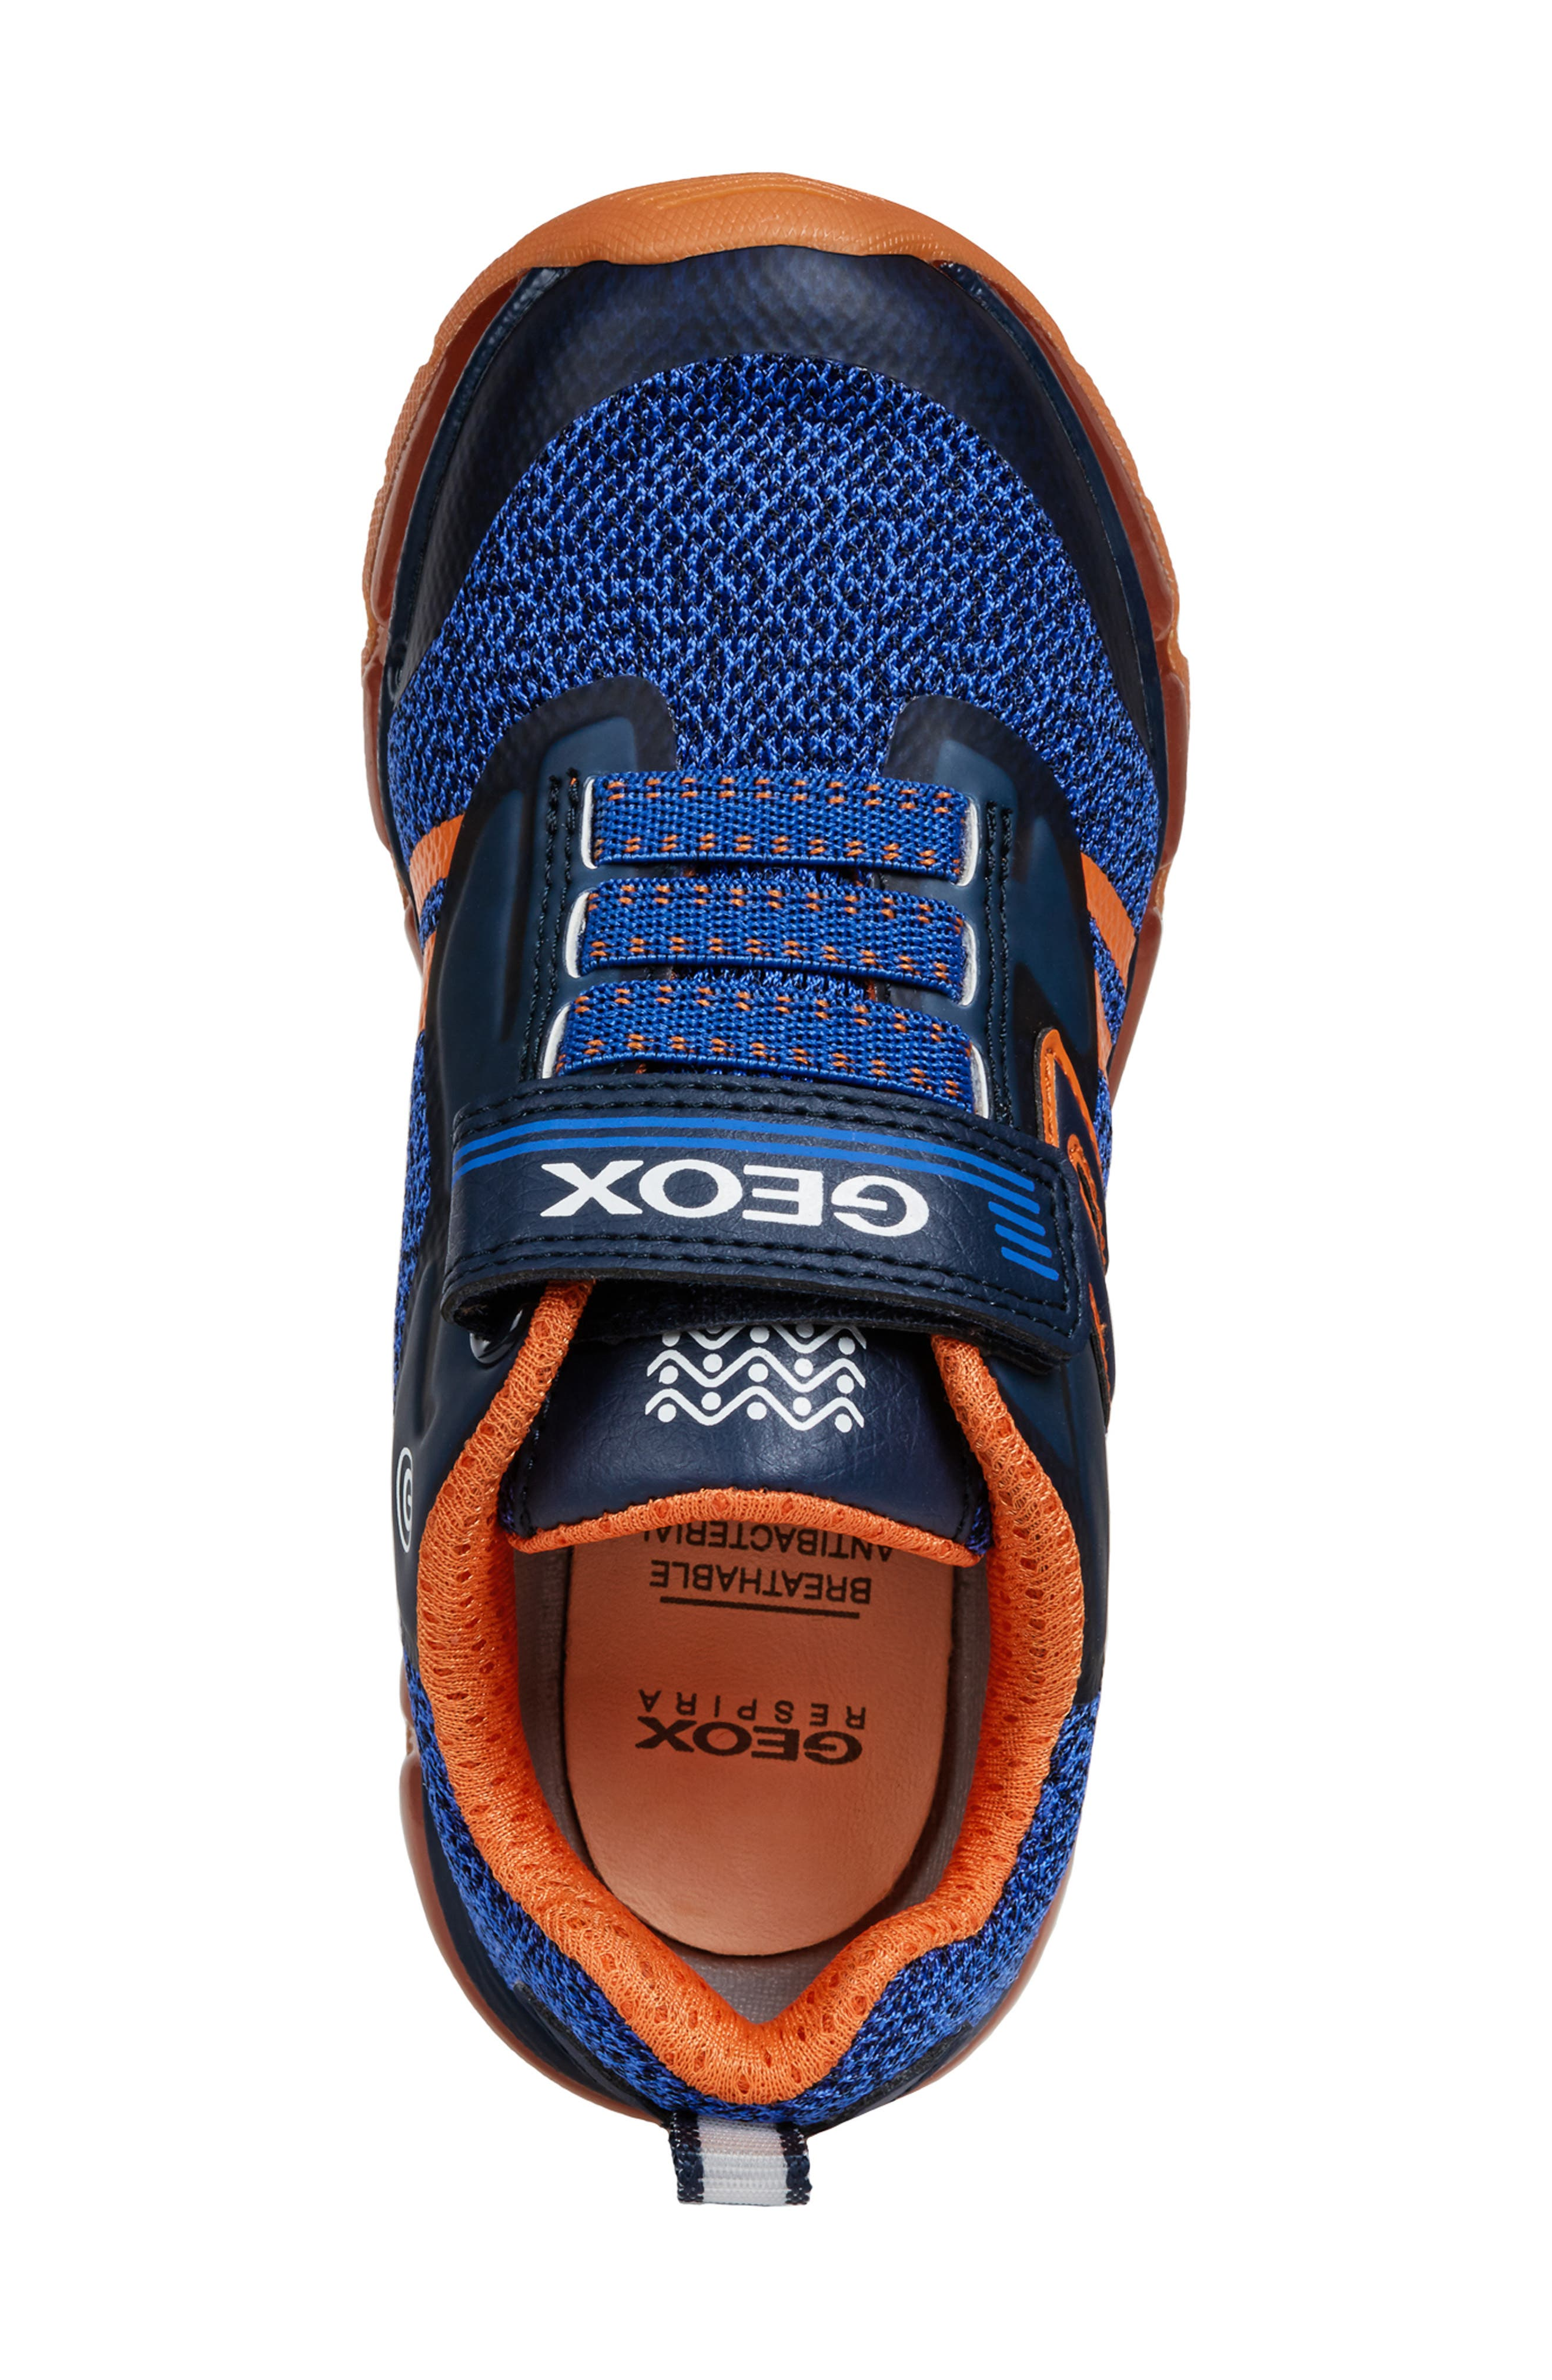 GEOX, Android 19 Light-Up Sneaker, Alternate thumbnail 5, color, NAVY/ ORANGE